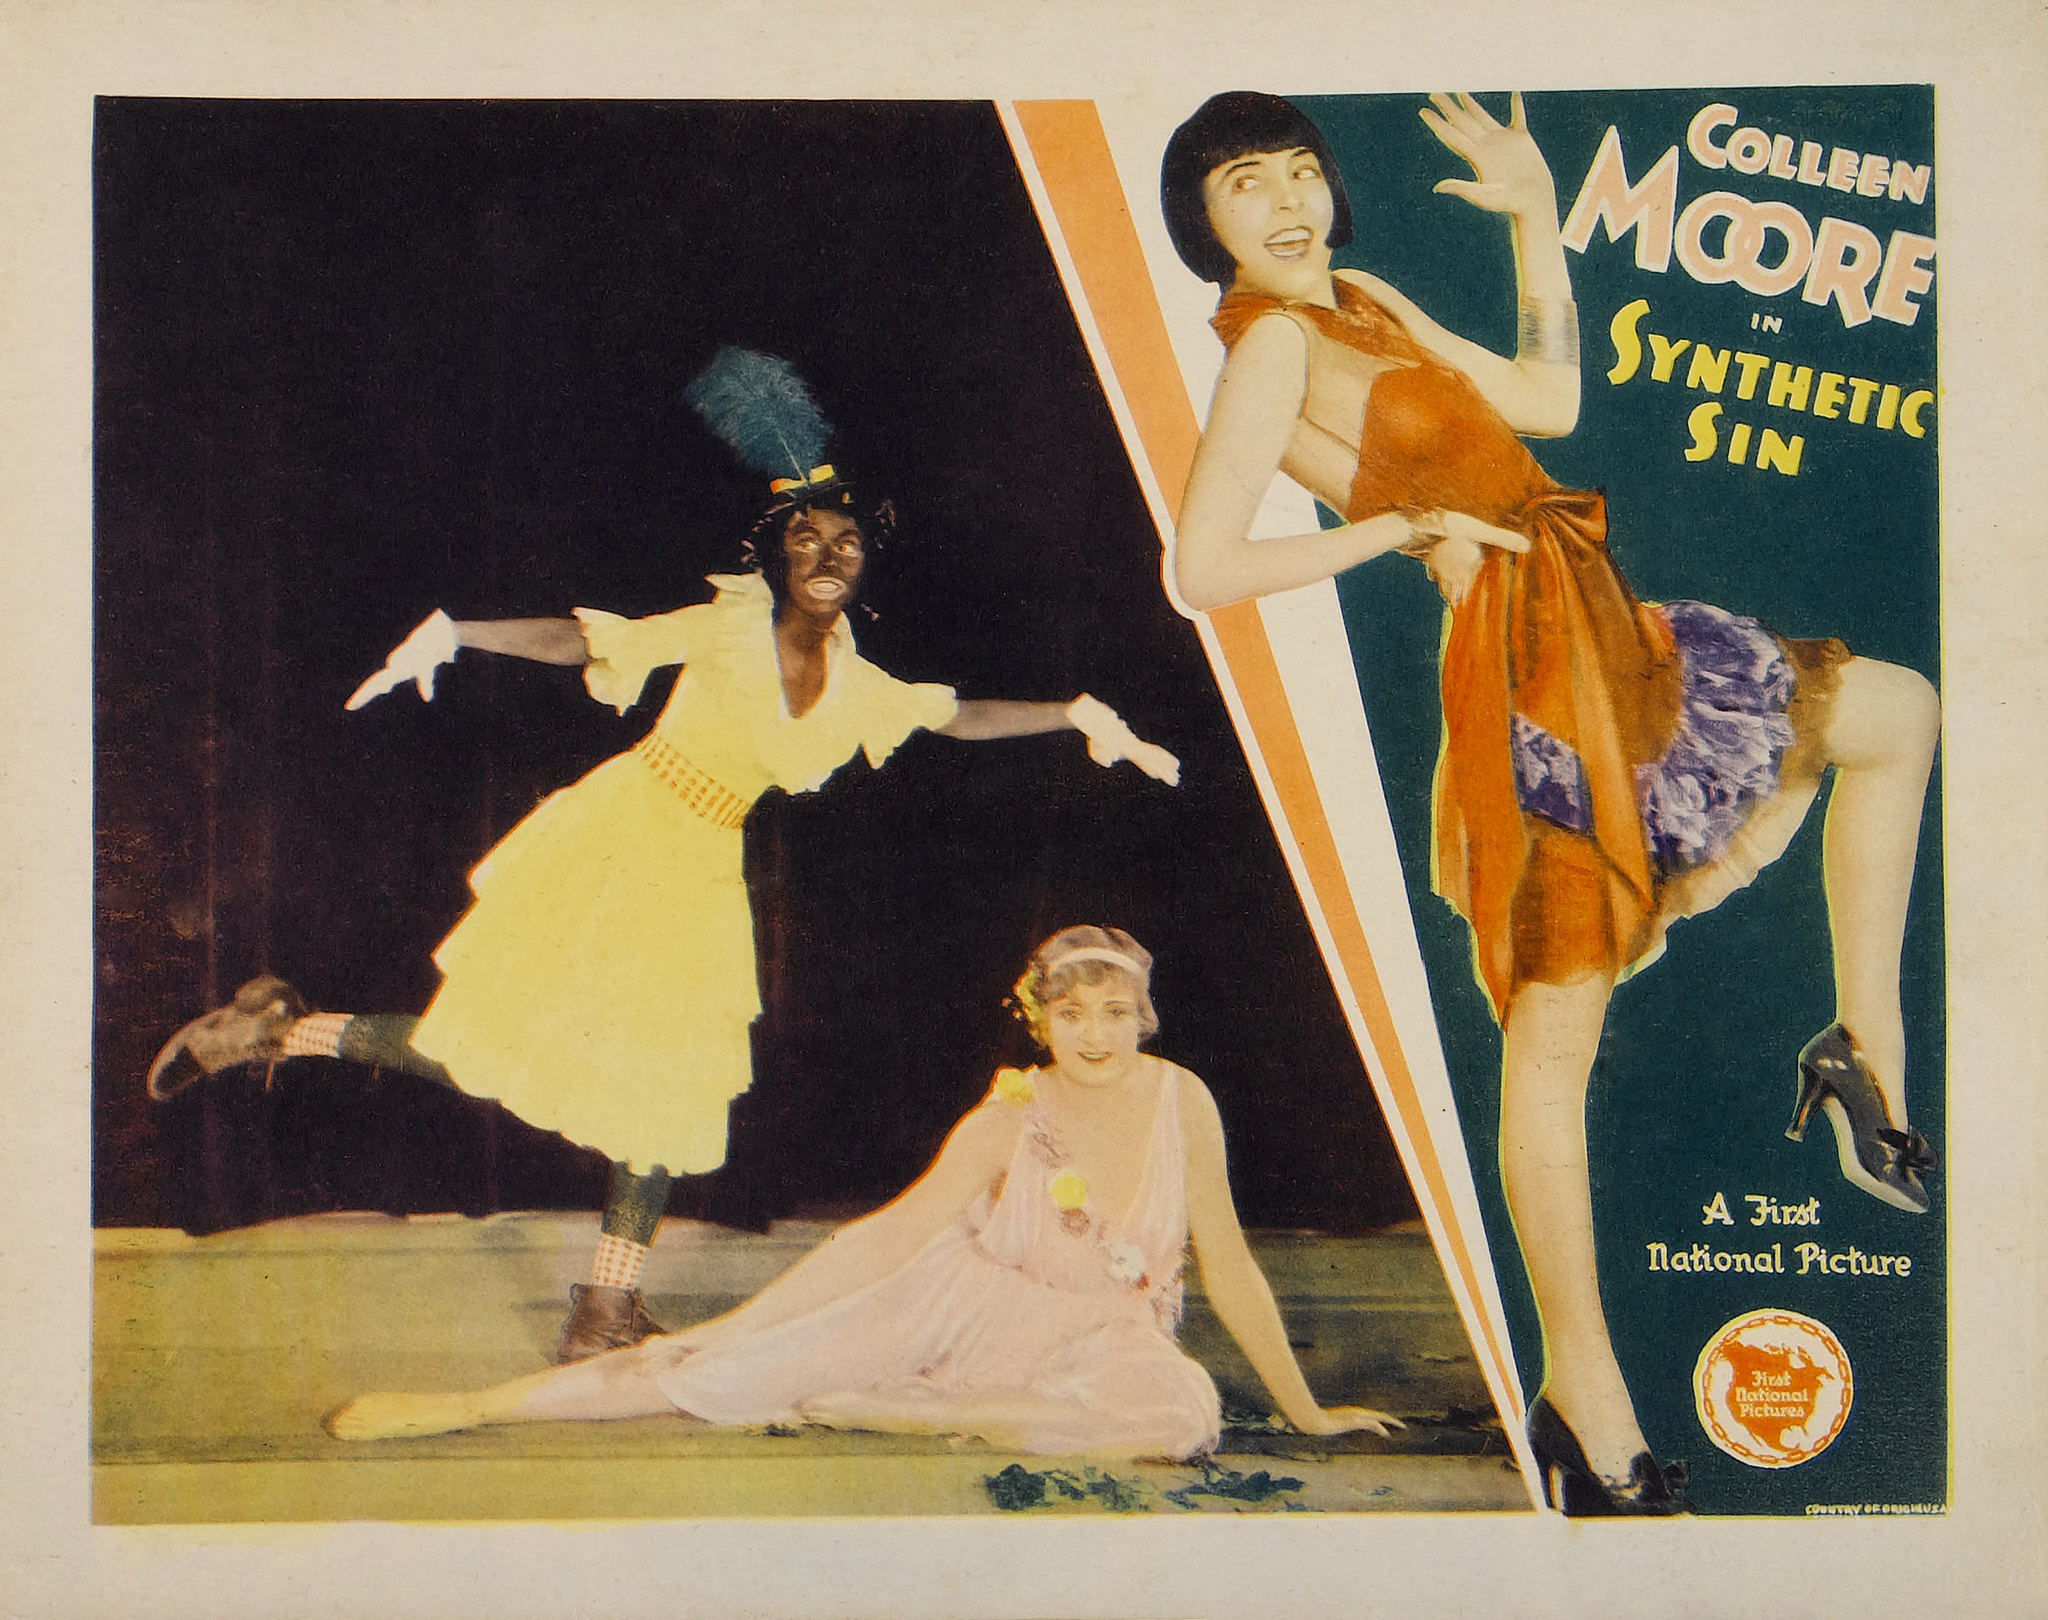 Gertrude Howard, Kathryn McGuire, and Colleen Moore in Synthetic Sin (1929)